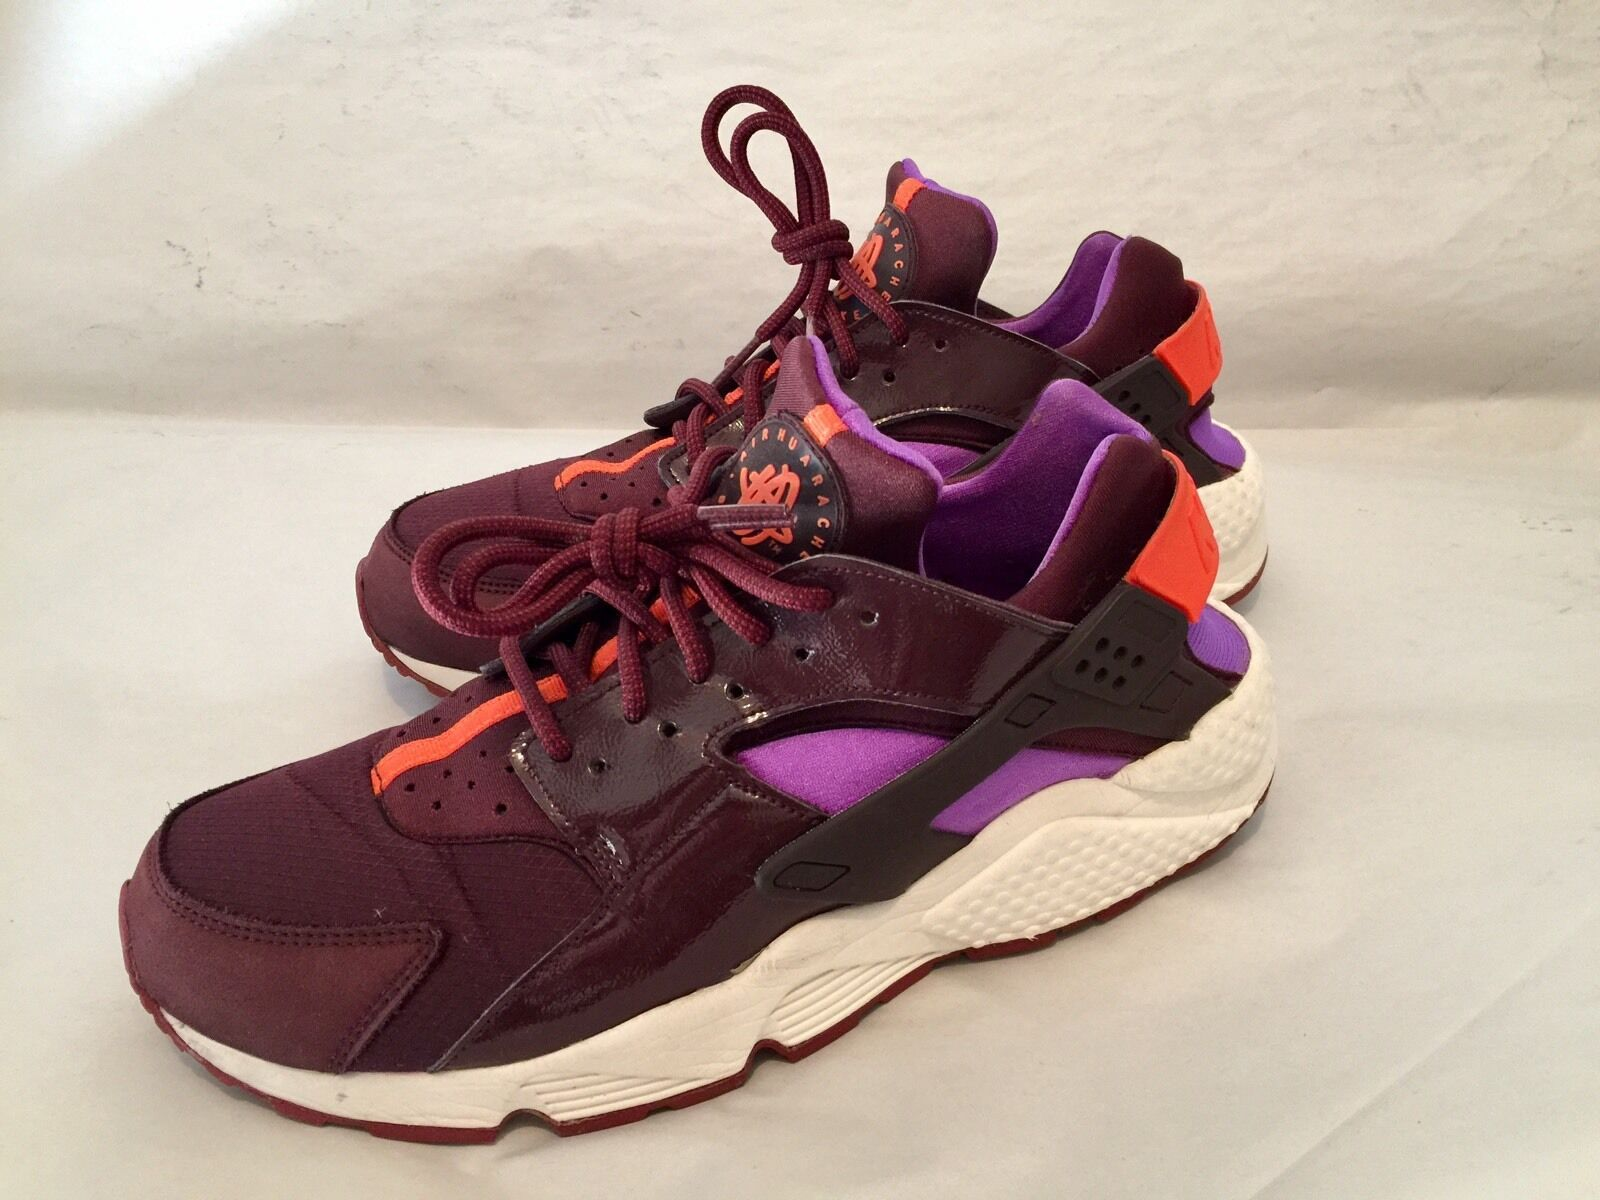 NIKE AIR HUARACHE LE BURGUNDY PURPLE 683818-681 MEN'S 10.5 WOMEN'S 12  RARE